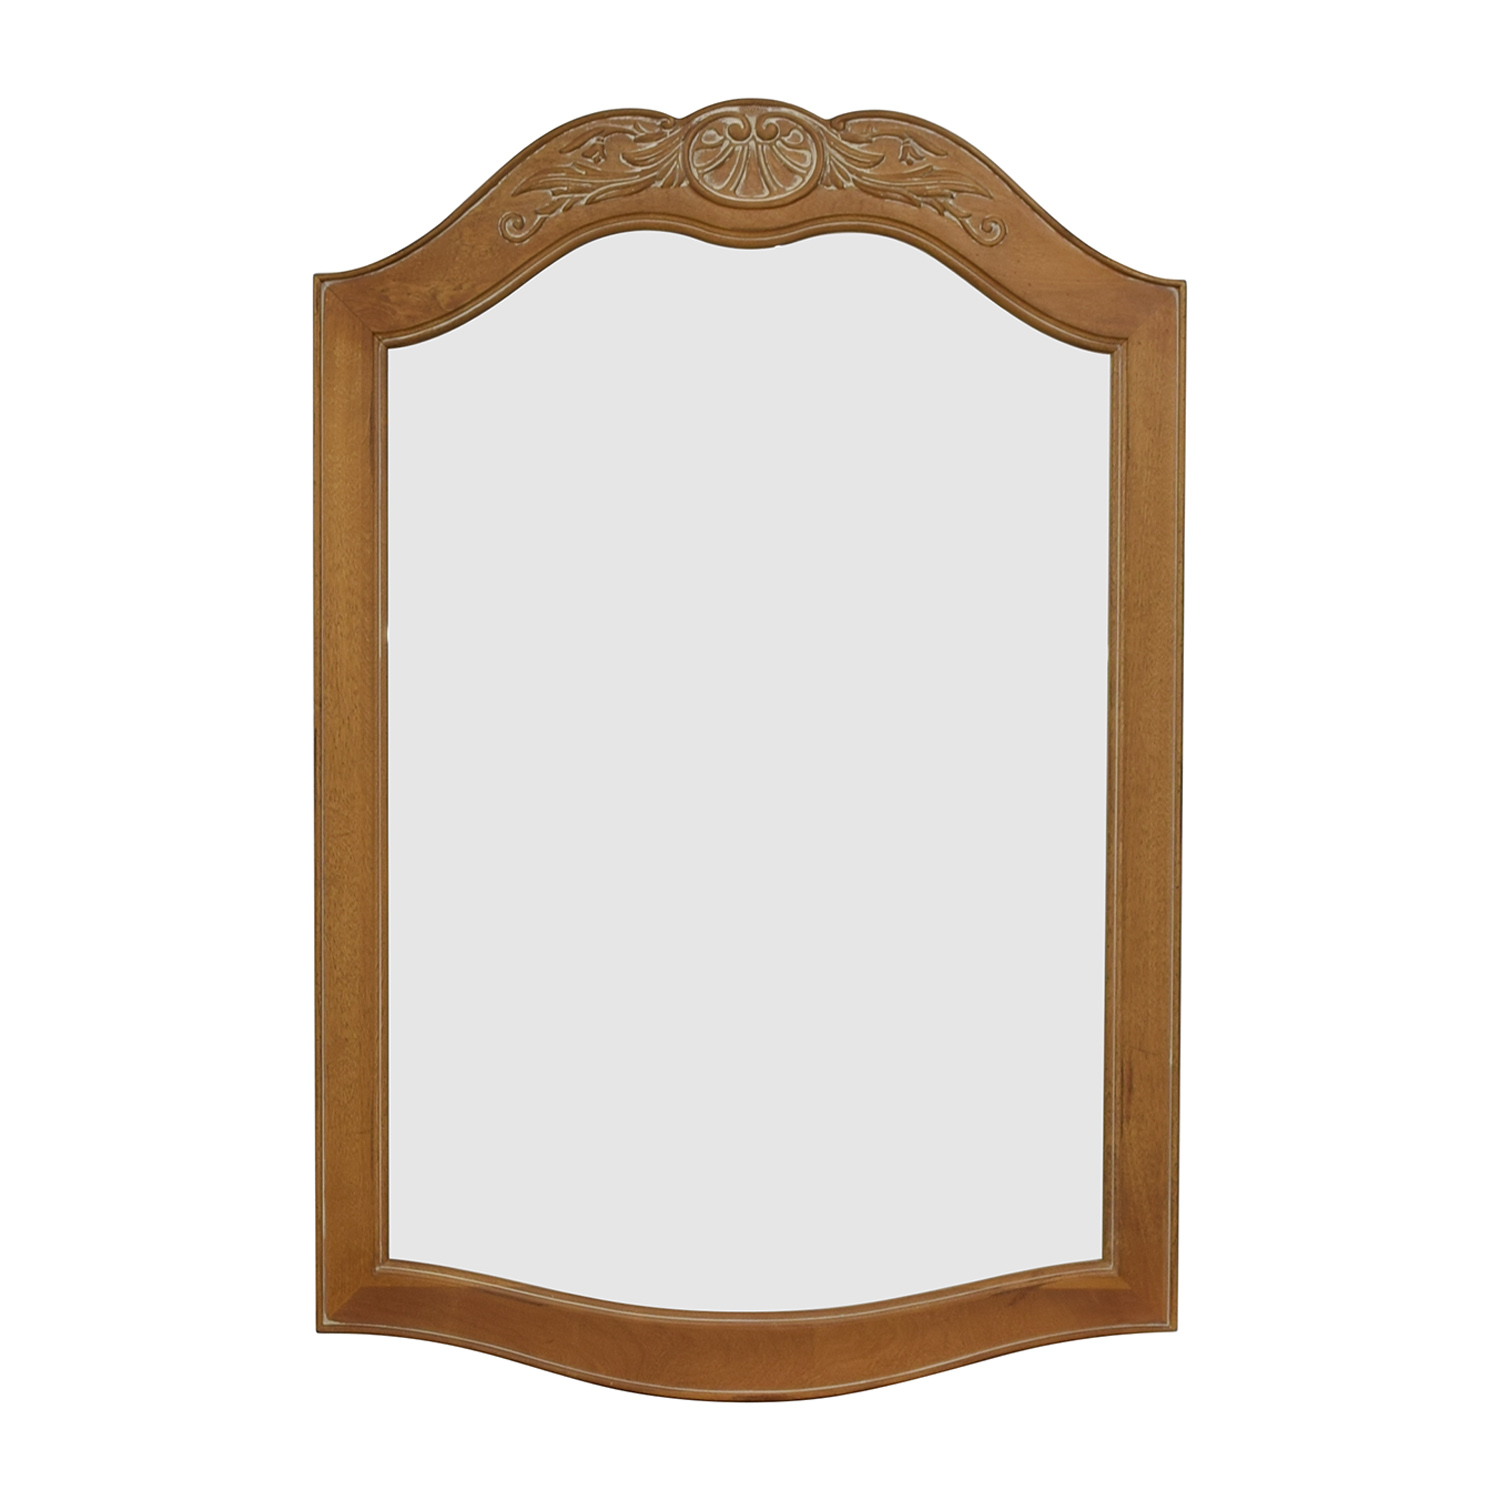 buy Ethan Allen Country French Wall Mirror Ethan Allen Decor